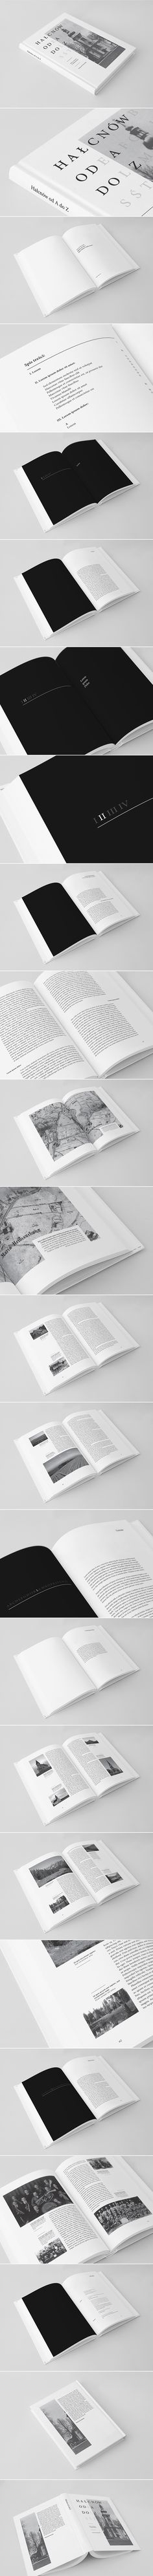 Halcnow od A so Z book (beautiful type treatment + layout) Book Design Layout, Print Layout, Graphic Design Layouts, Freelance Graphic Design, Book Cover Design, Editorial Design Layouts, Web Design, Print Design, Type Treatments